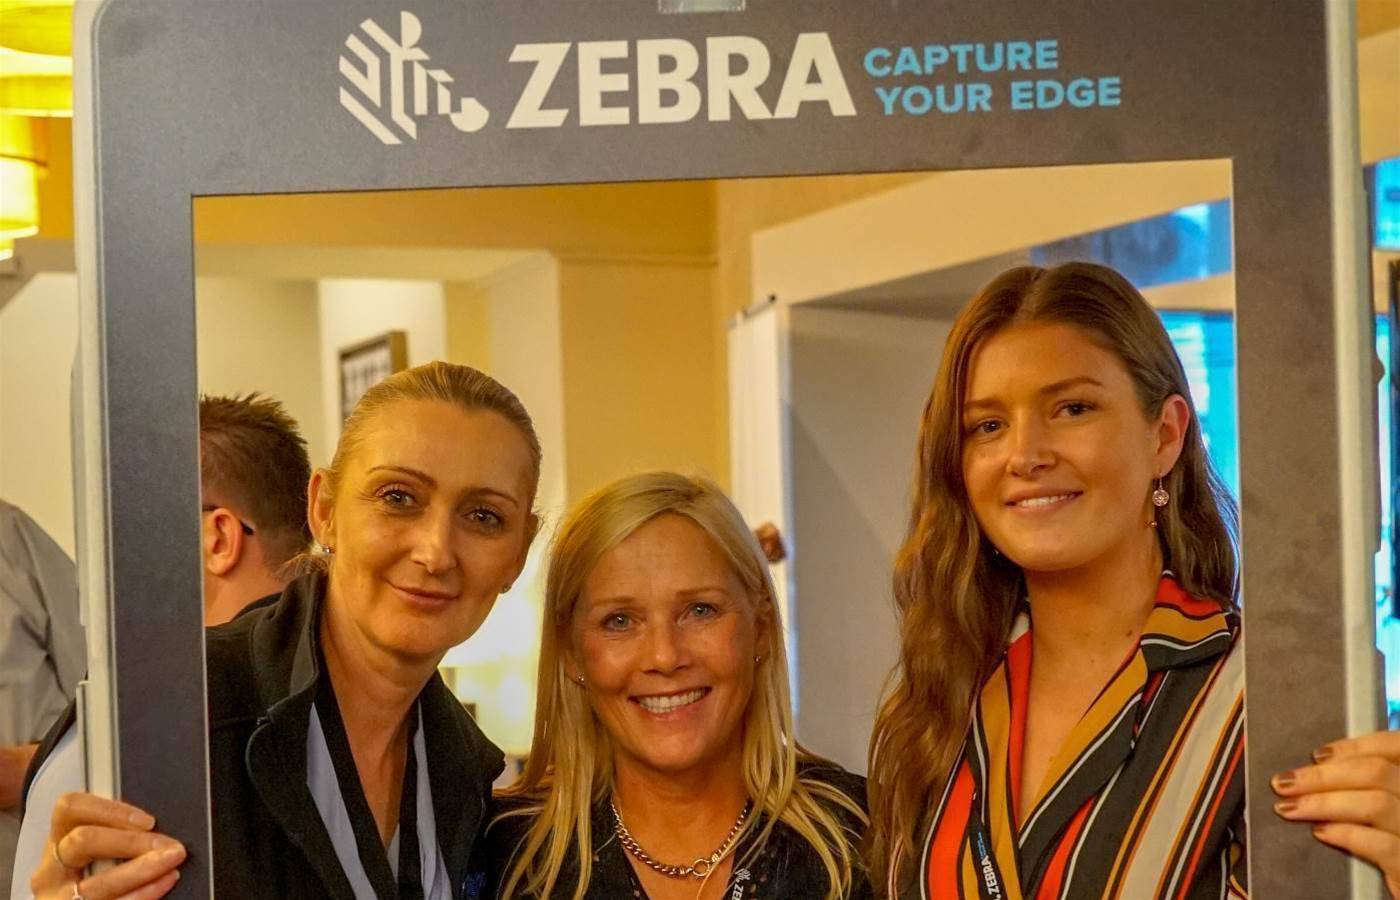 Who was spotted at Zebra's ANZ Partner Roadshow?